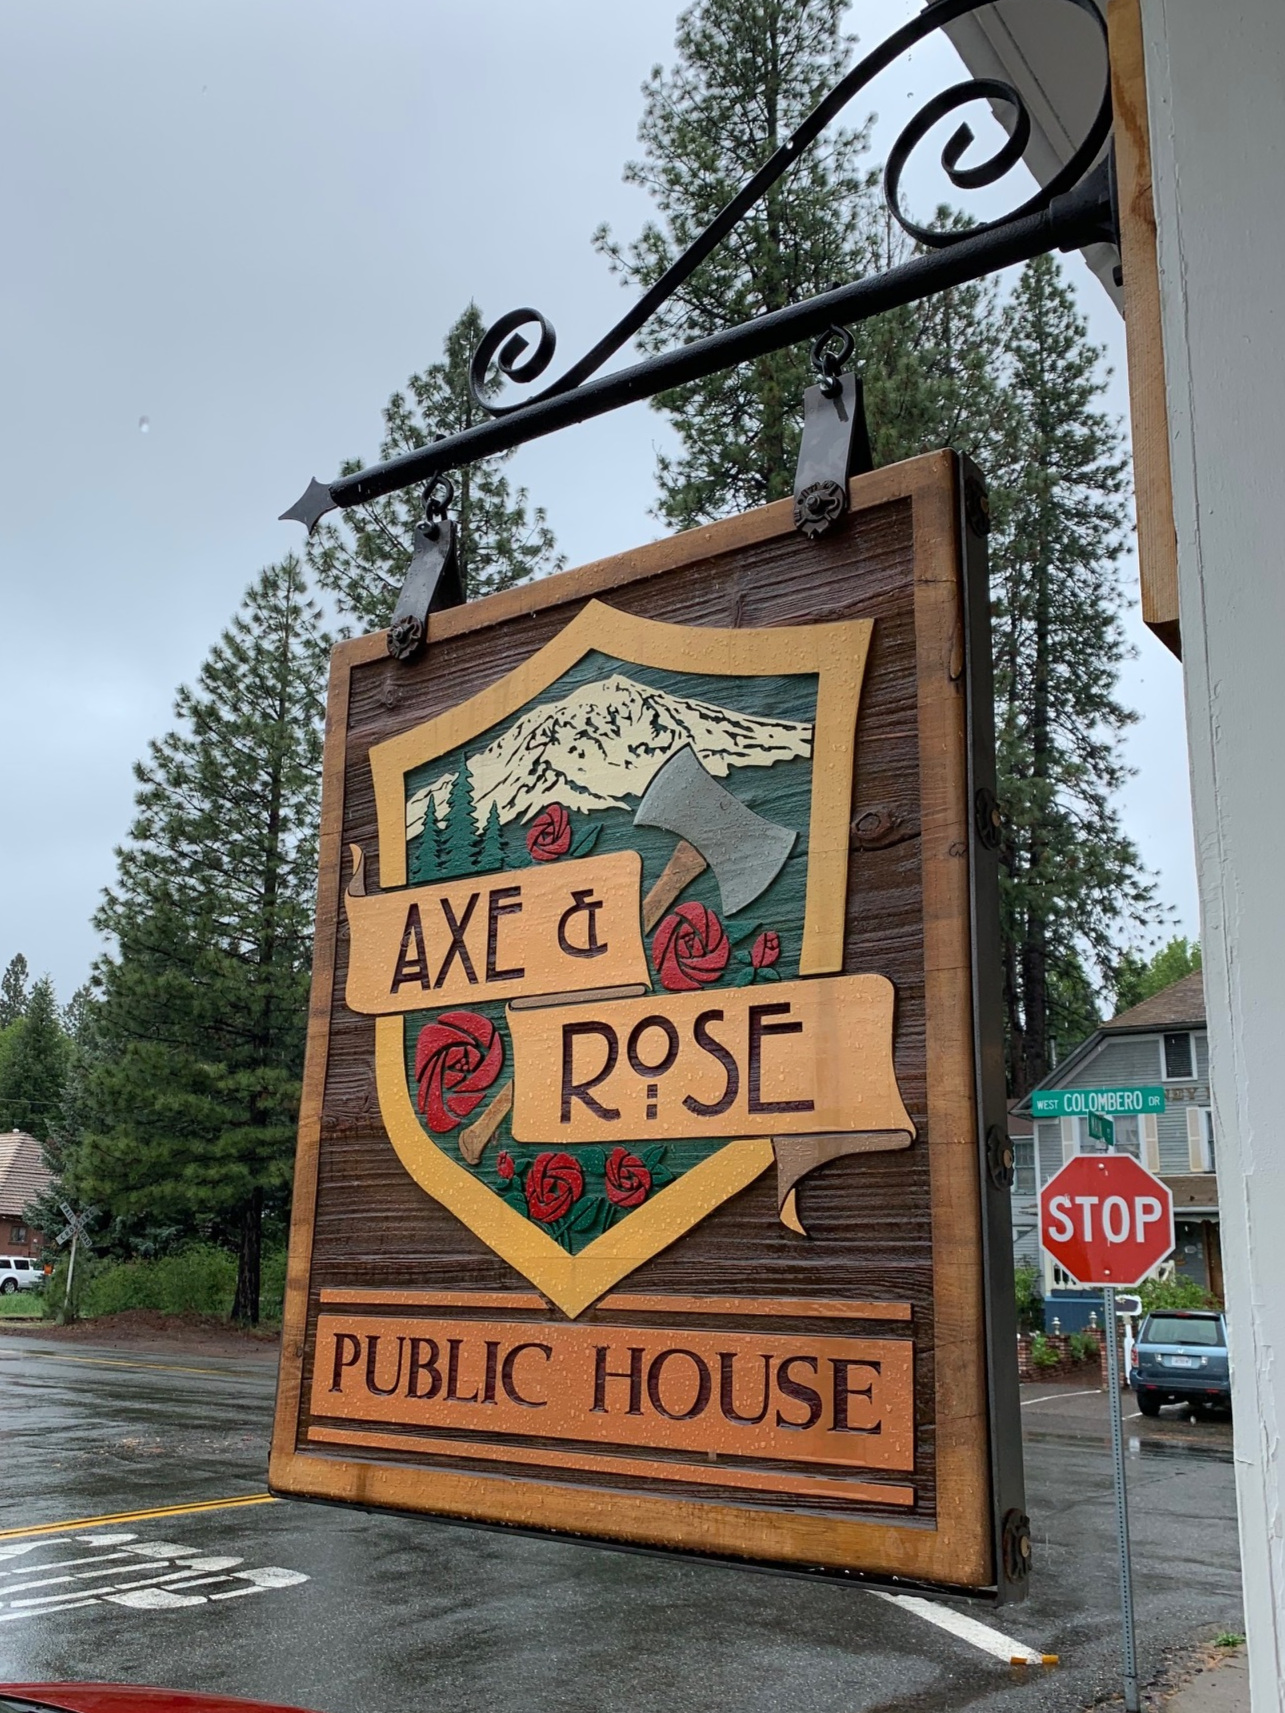 Axe and Rose Public House on the corner of Main St. and Colombero Rd.